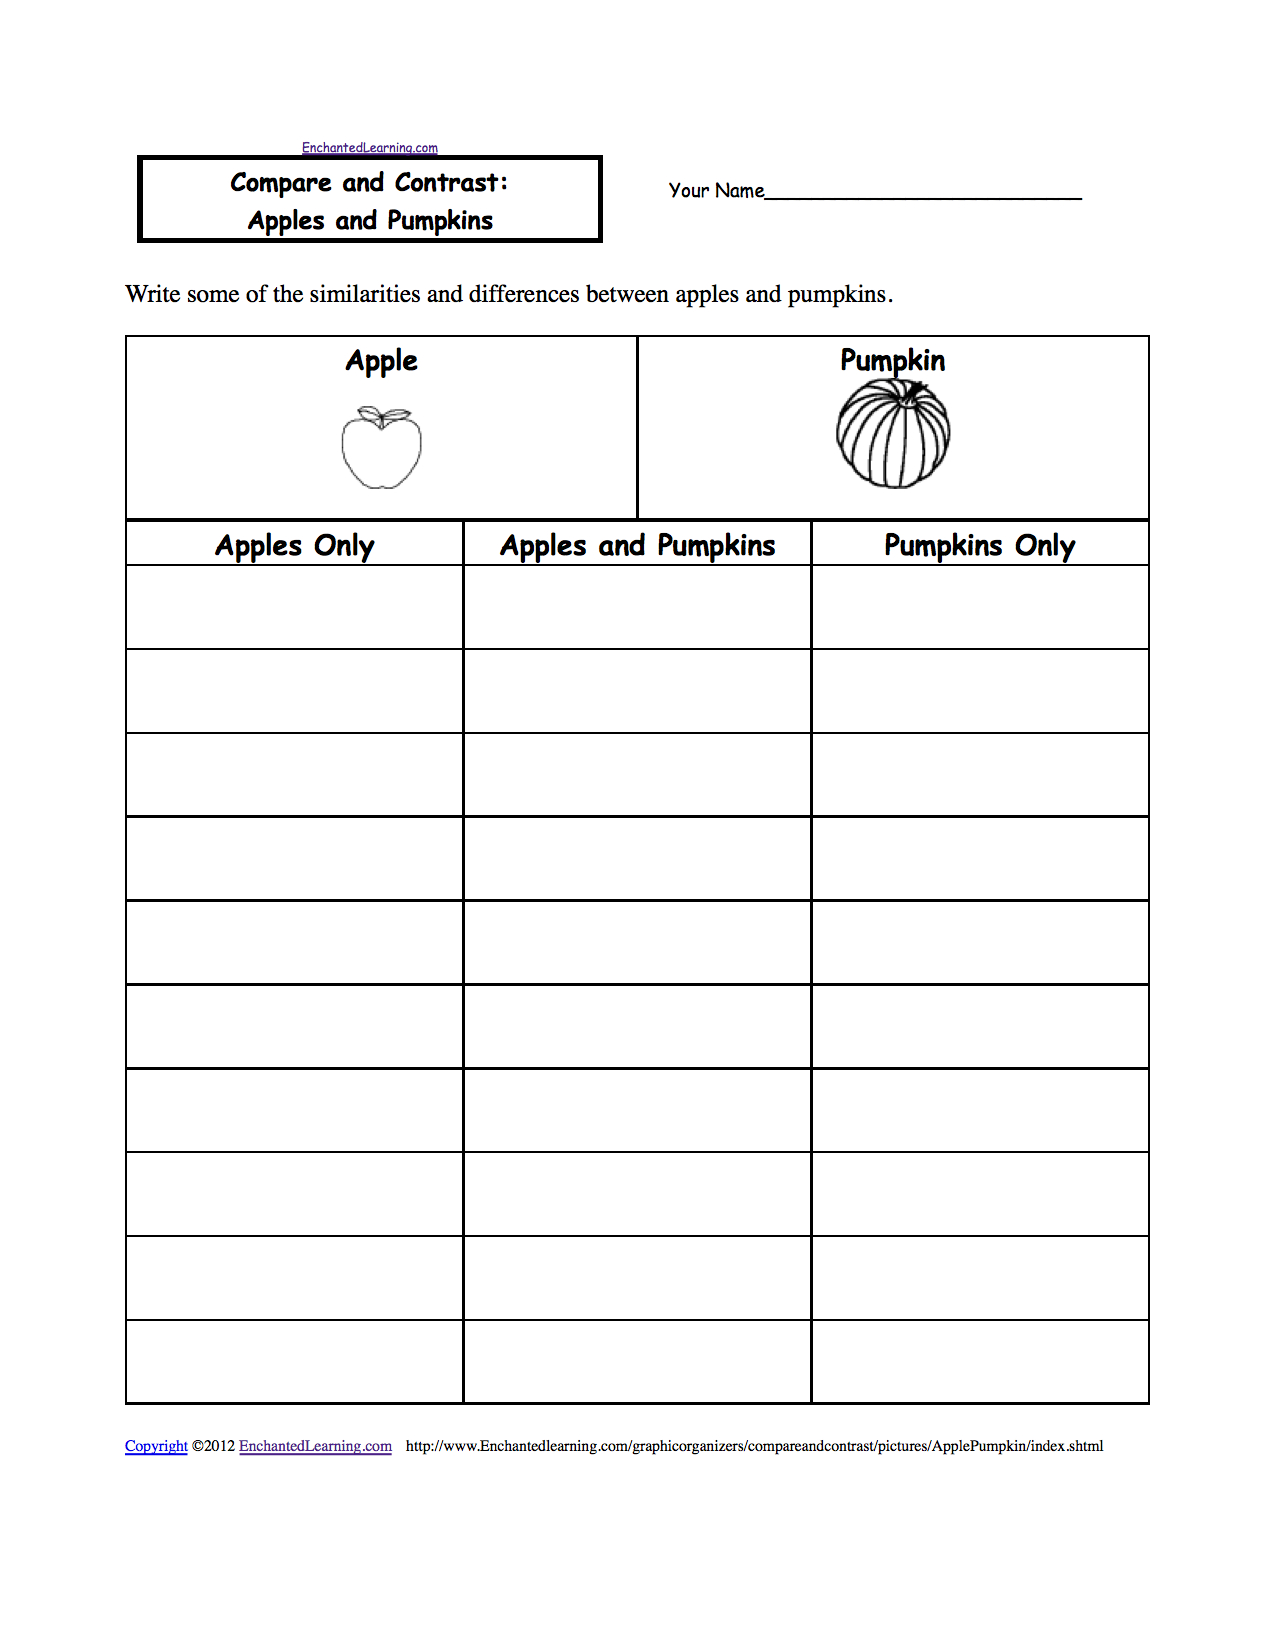 Compare And Contrast: Apple And Pumpkin, A Worksheet | Printable Compare And Contrast Worksheets